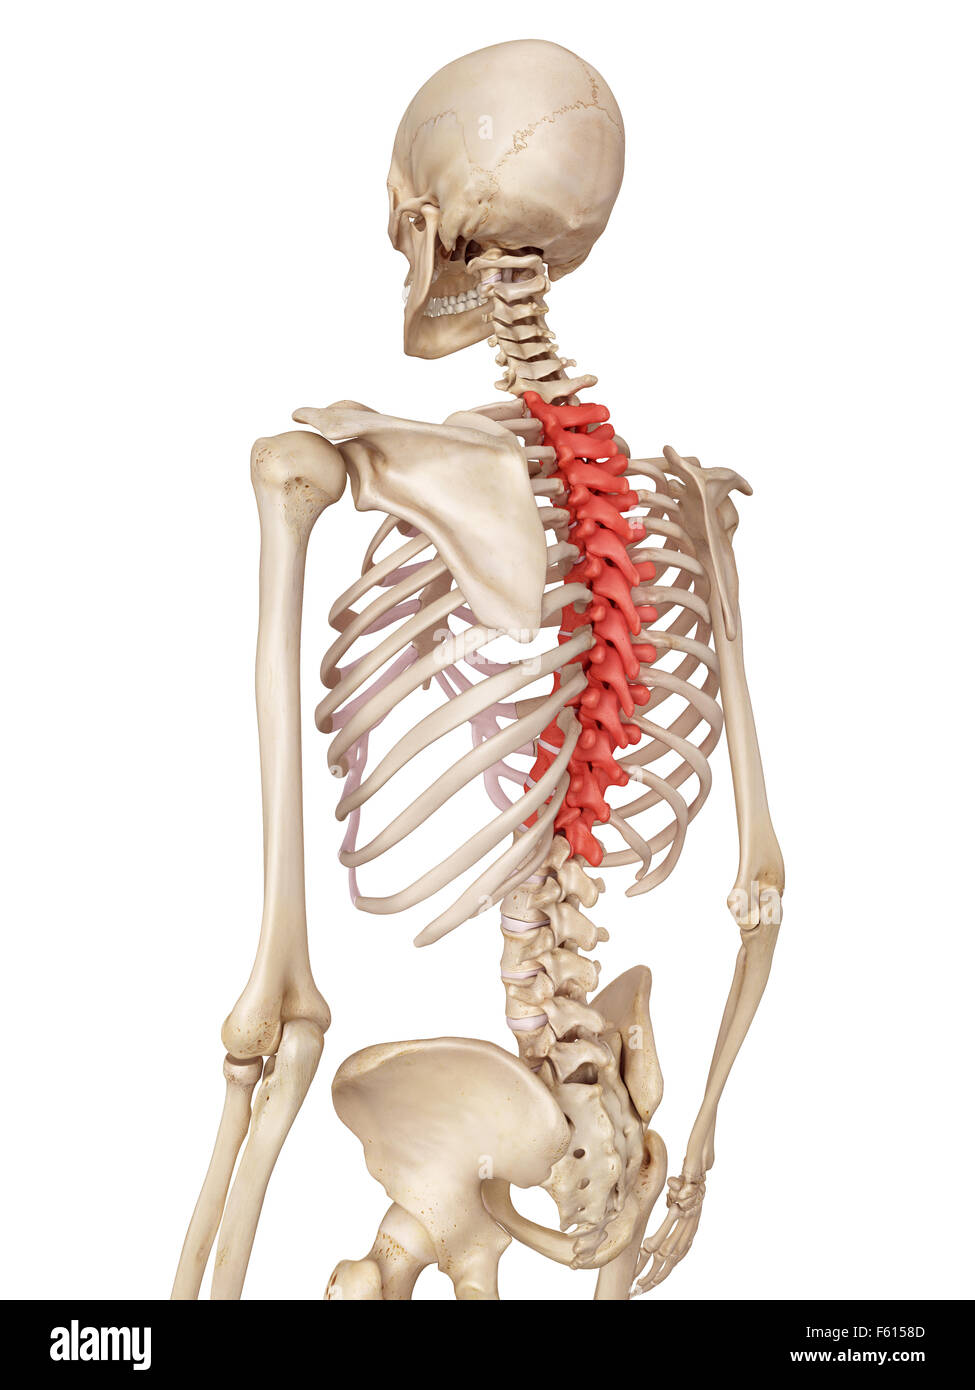 Thoracic Spine Stock Photos & Thoracic Spine Stock Images - Alamy